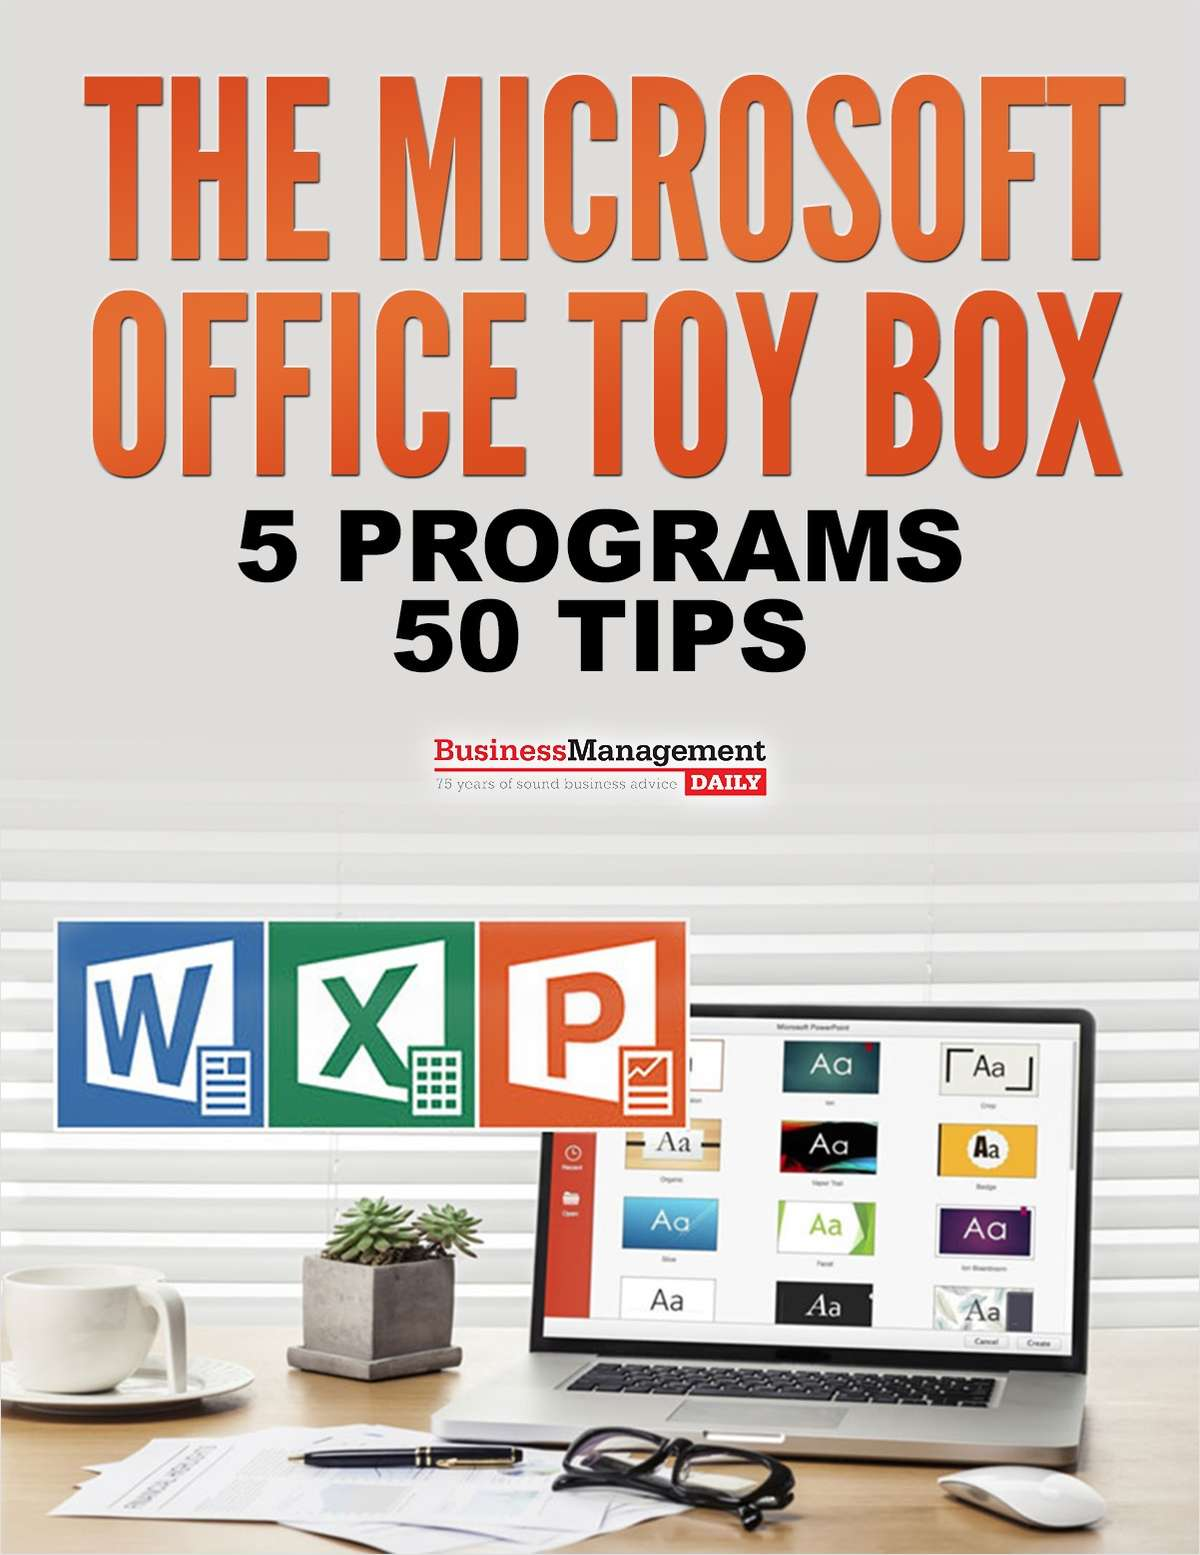 The Microsoft Office Toy Box - 5 Programs, 50 Tips